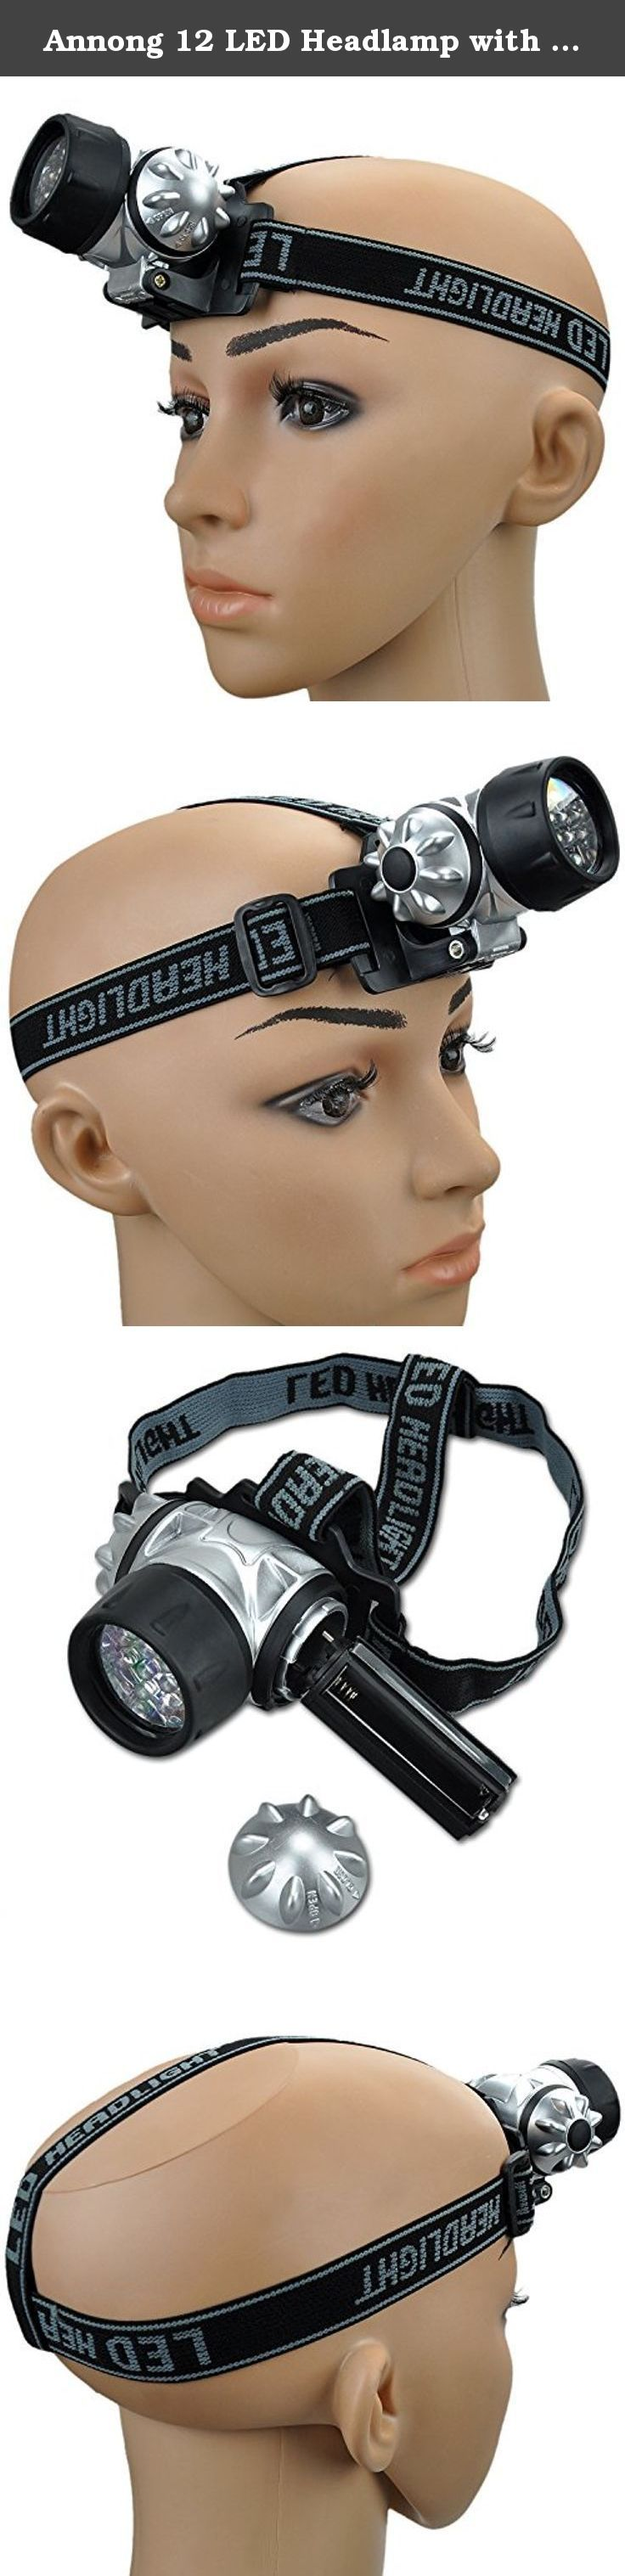 Annong 12 LED Headlamp with Adjustable Head Lamp Straps Flash Light Camping HeadLight. Item Specifications: Water Resistant Easily attaches to Hat, Helmet, or Head Adjustable pivoting head 12 LED light & 12 LED flashing mode IDeal for camping, hiking, automotive tasks, hunting, & flashlight tag.